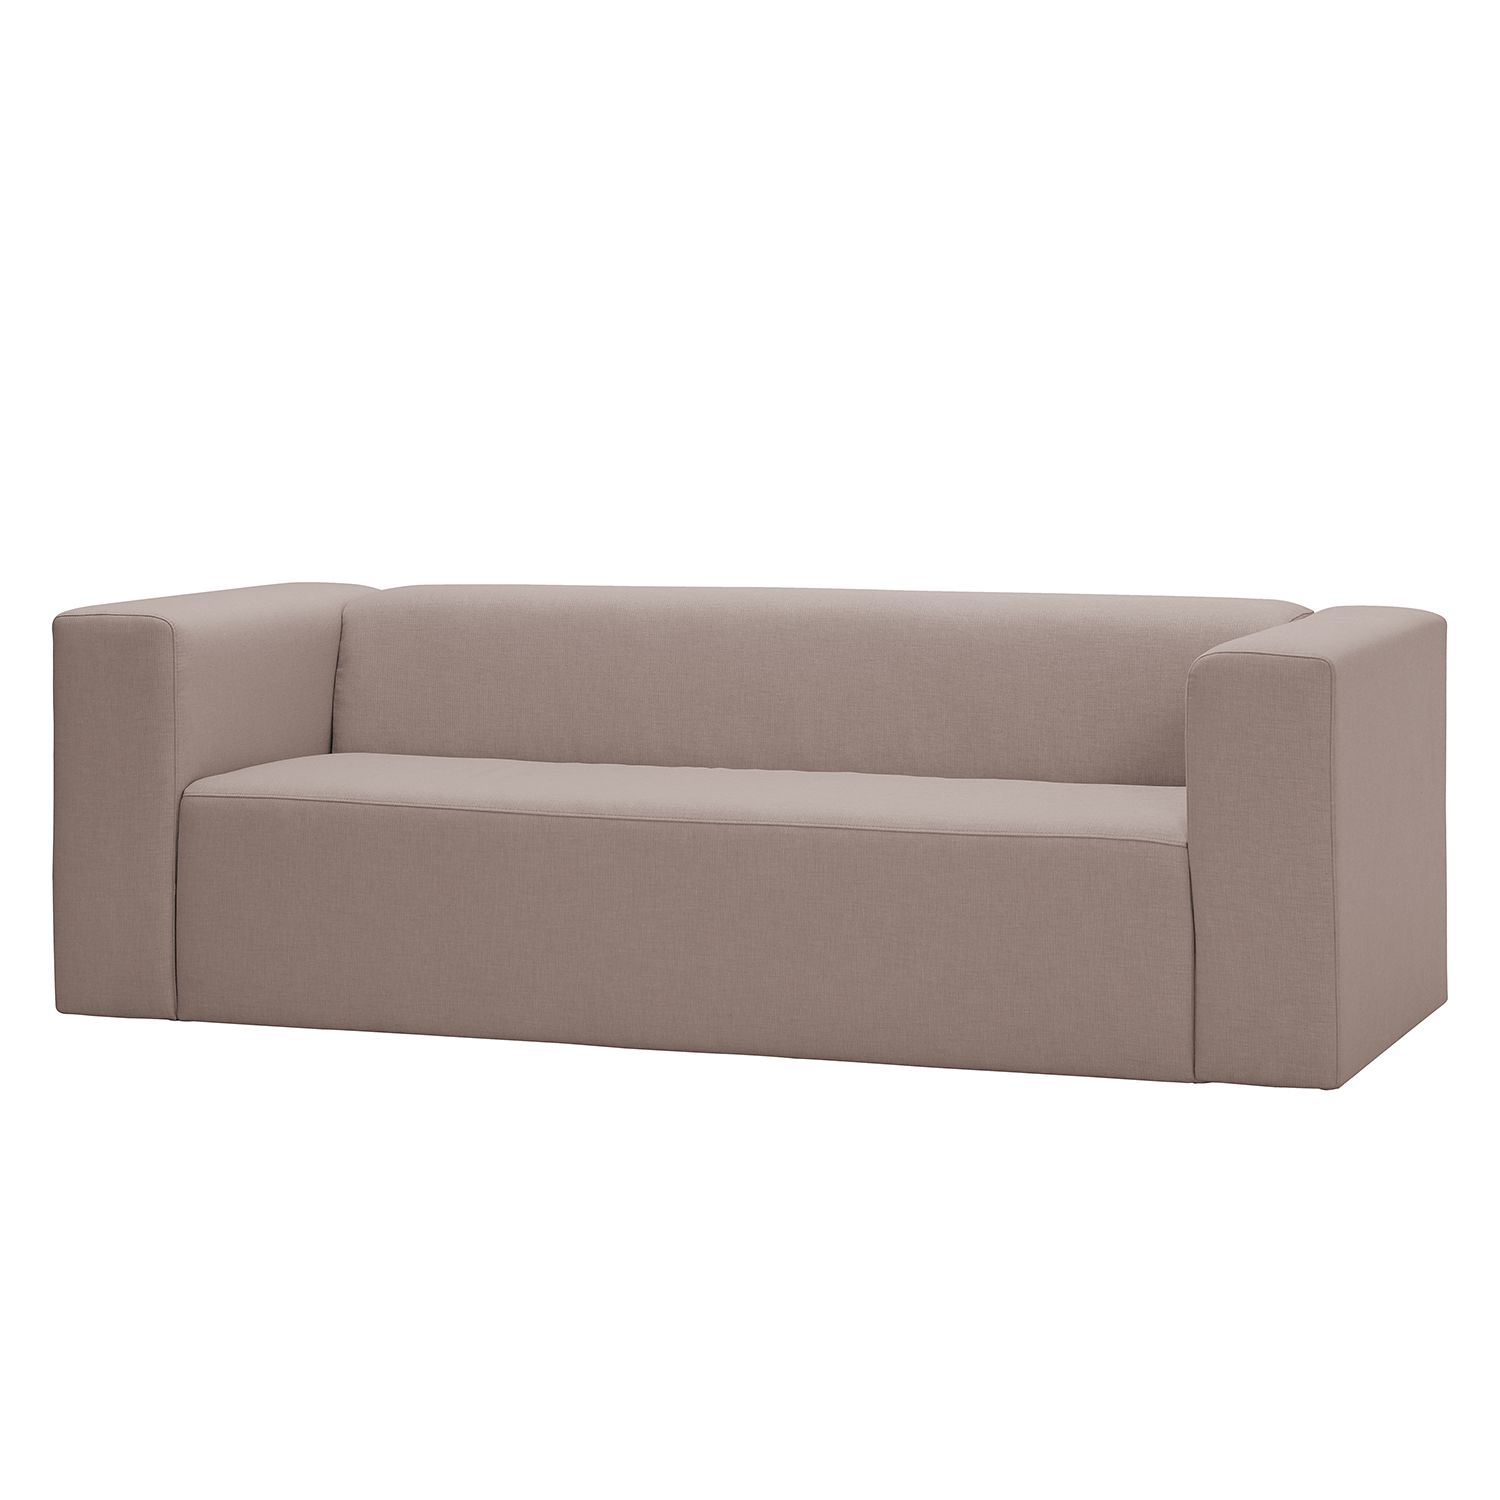 Ecksofa Billund Morteens Sofa. Croom I Webstoff With Morteens Sofa. Full